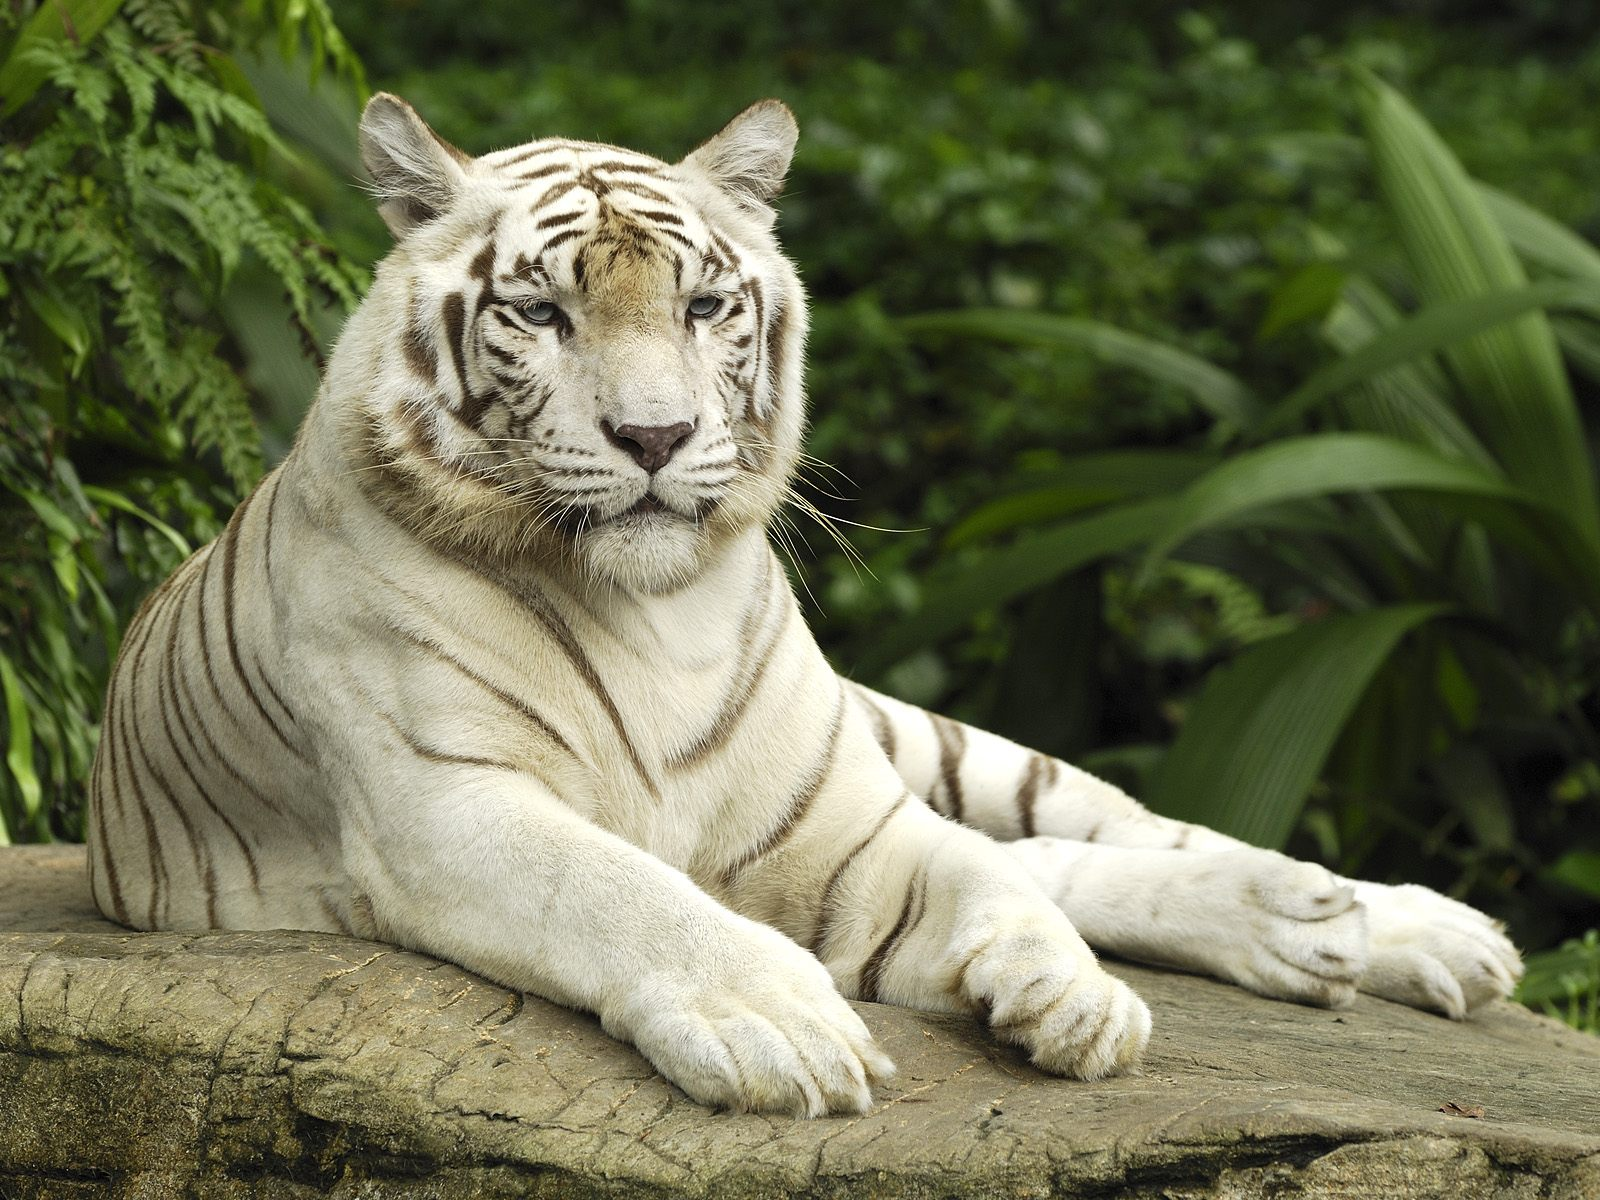 White Tiger, Singapore 367.89 Kb